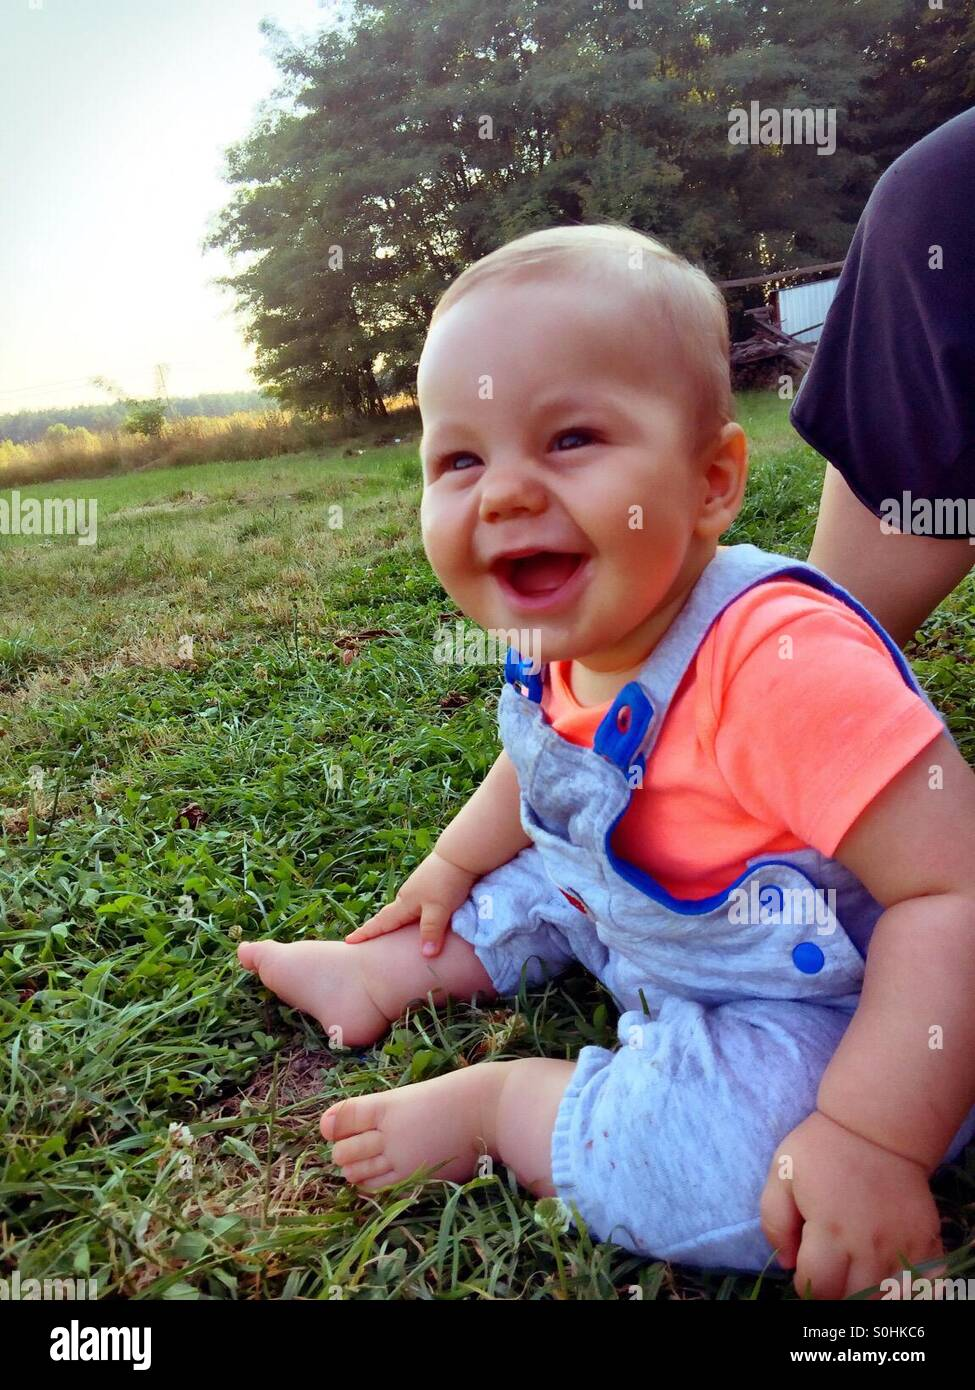 Smiling baby boy sitting on the grass Photo Stock